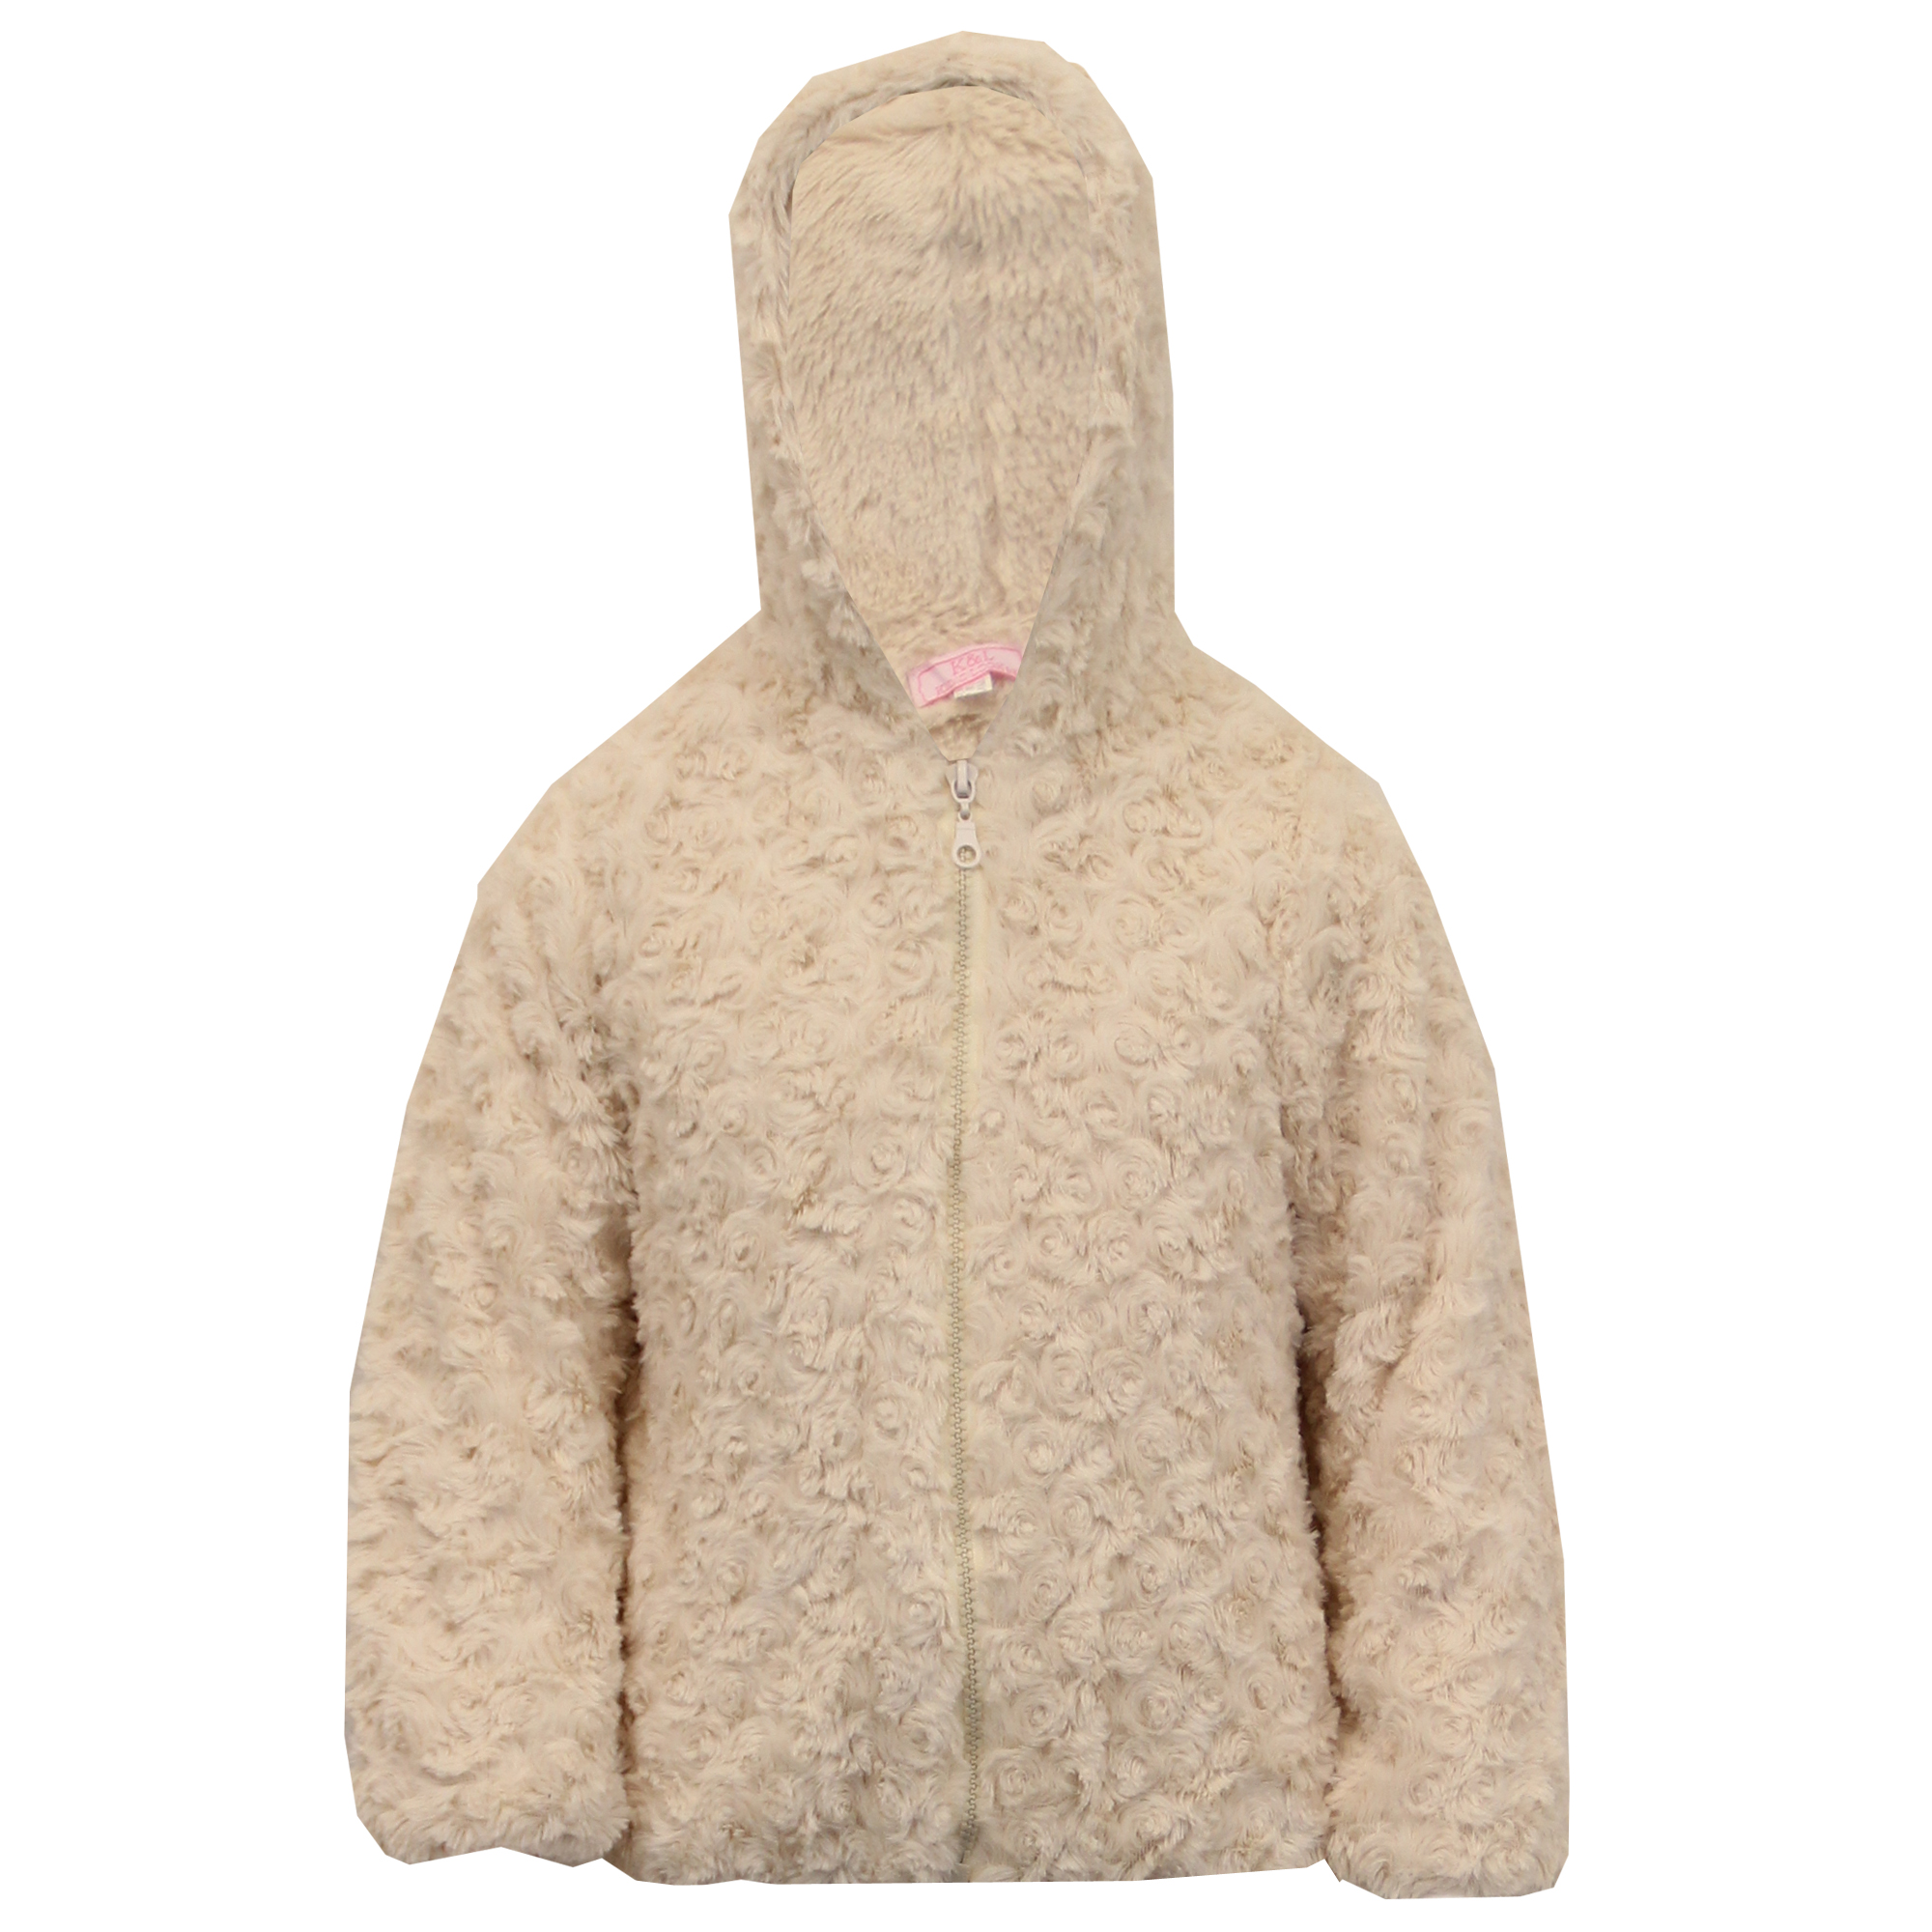 Sheepskin products including saddle pads, car seat covers, hats, slippers, rugs, faux fur jackets for less, free shipping.